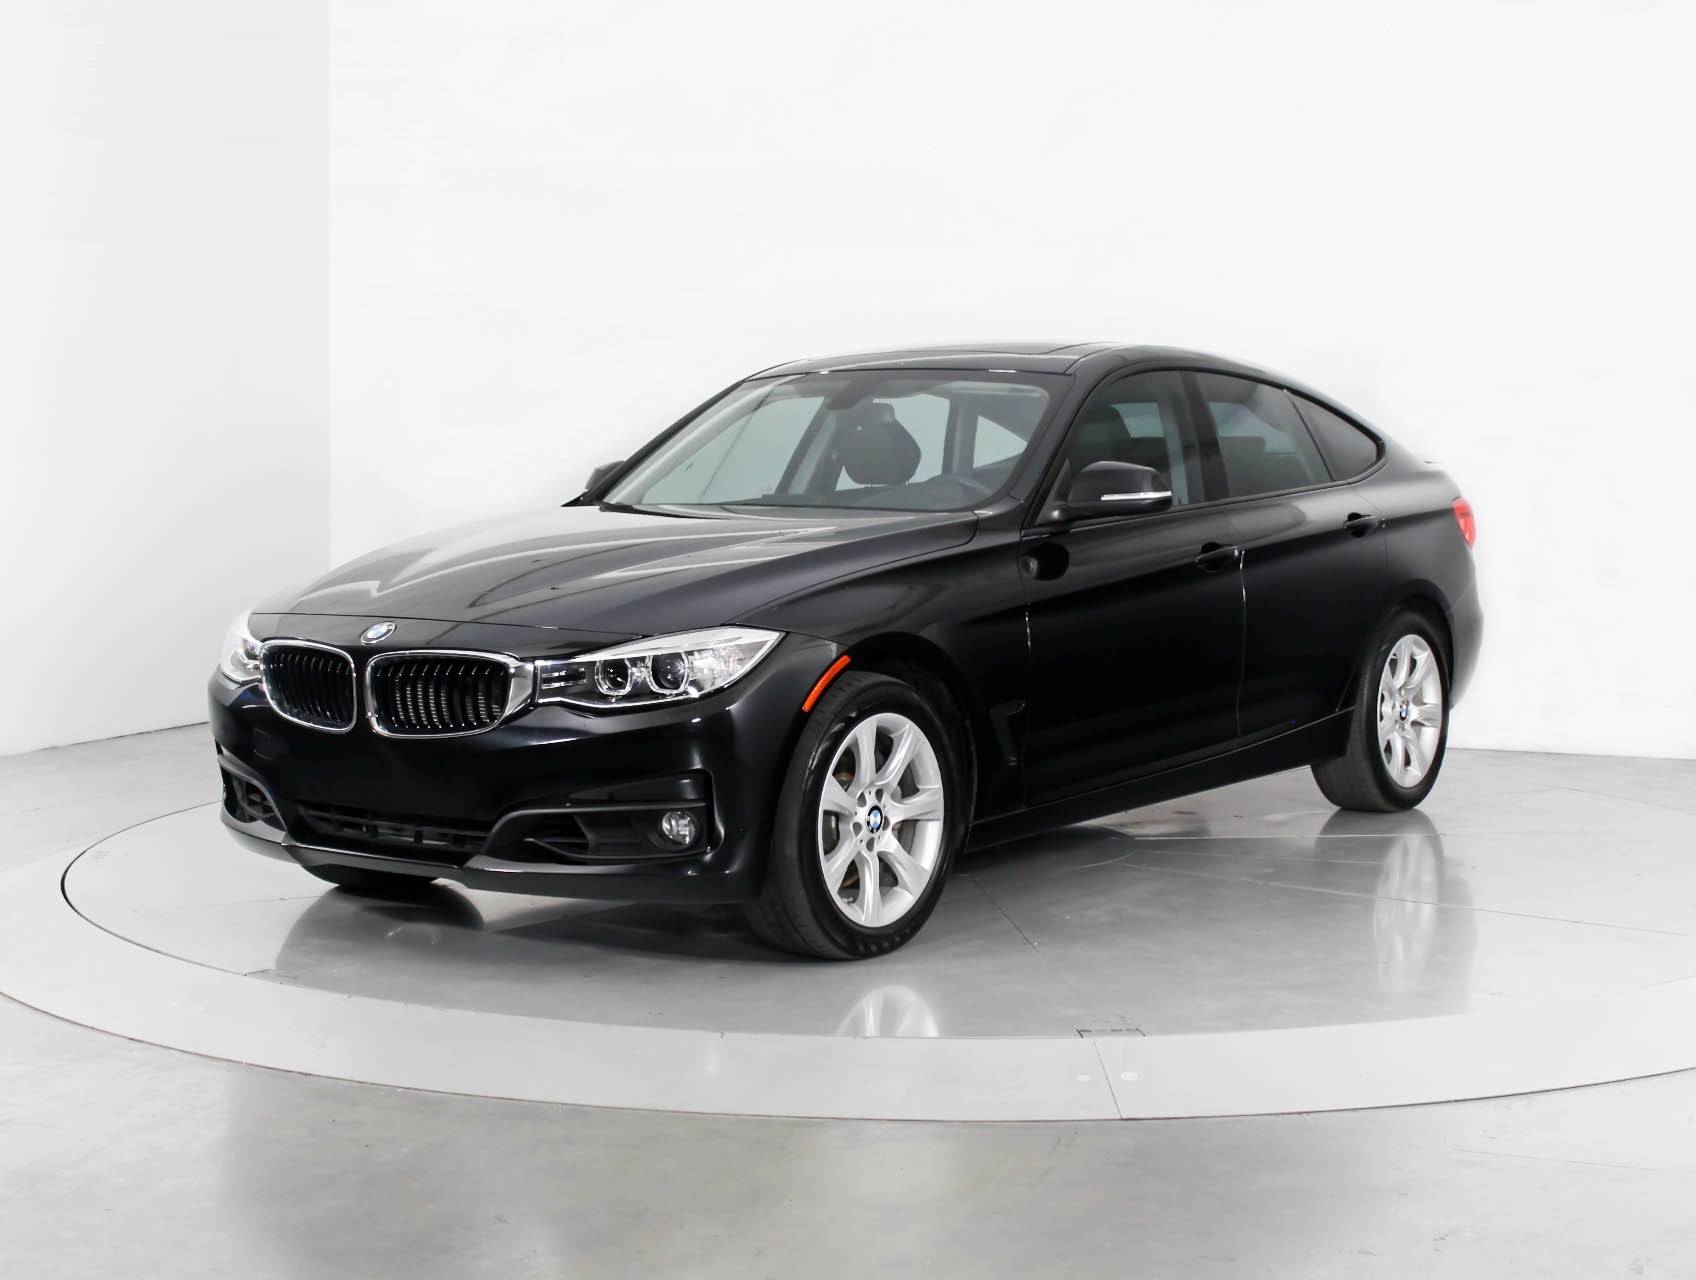 Used 2015 Bmw 3 Series 335i Xdrive Gt Hatchback For Sale In West